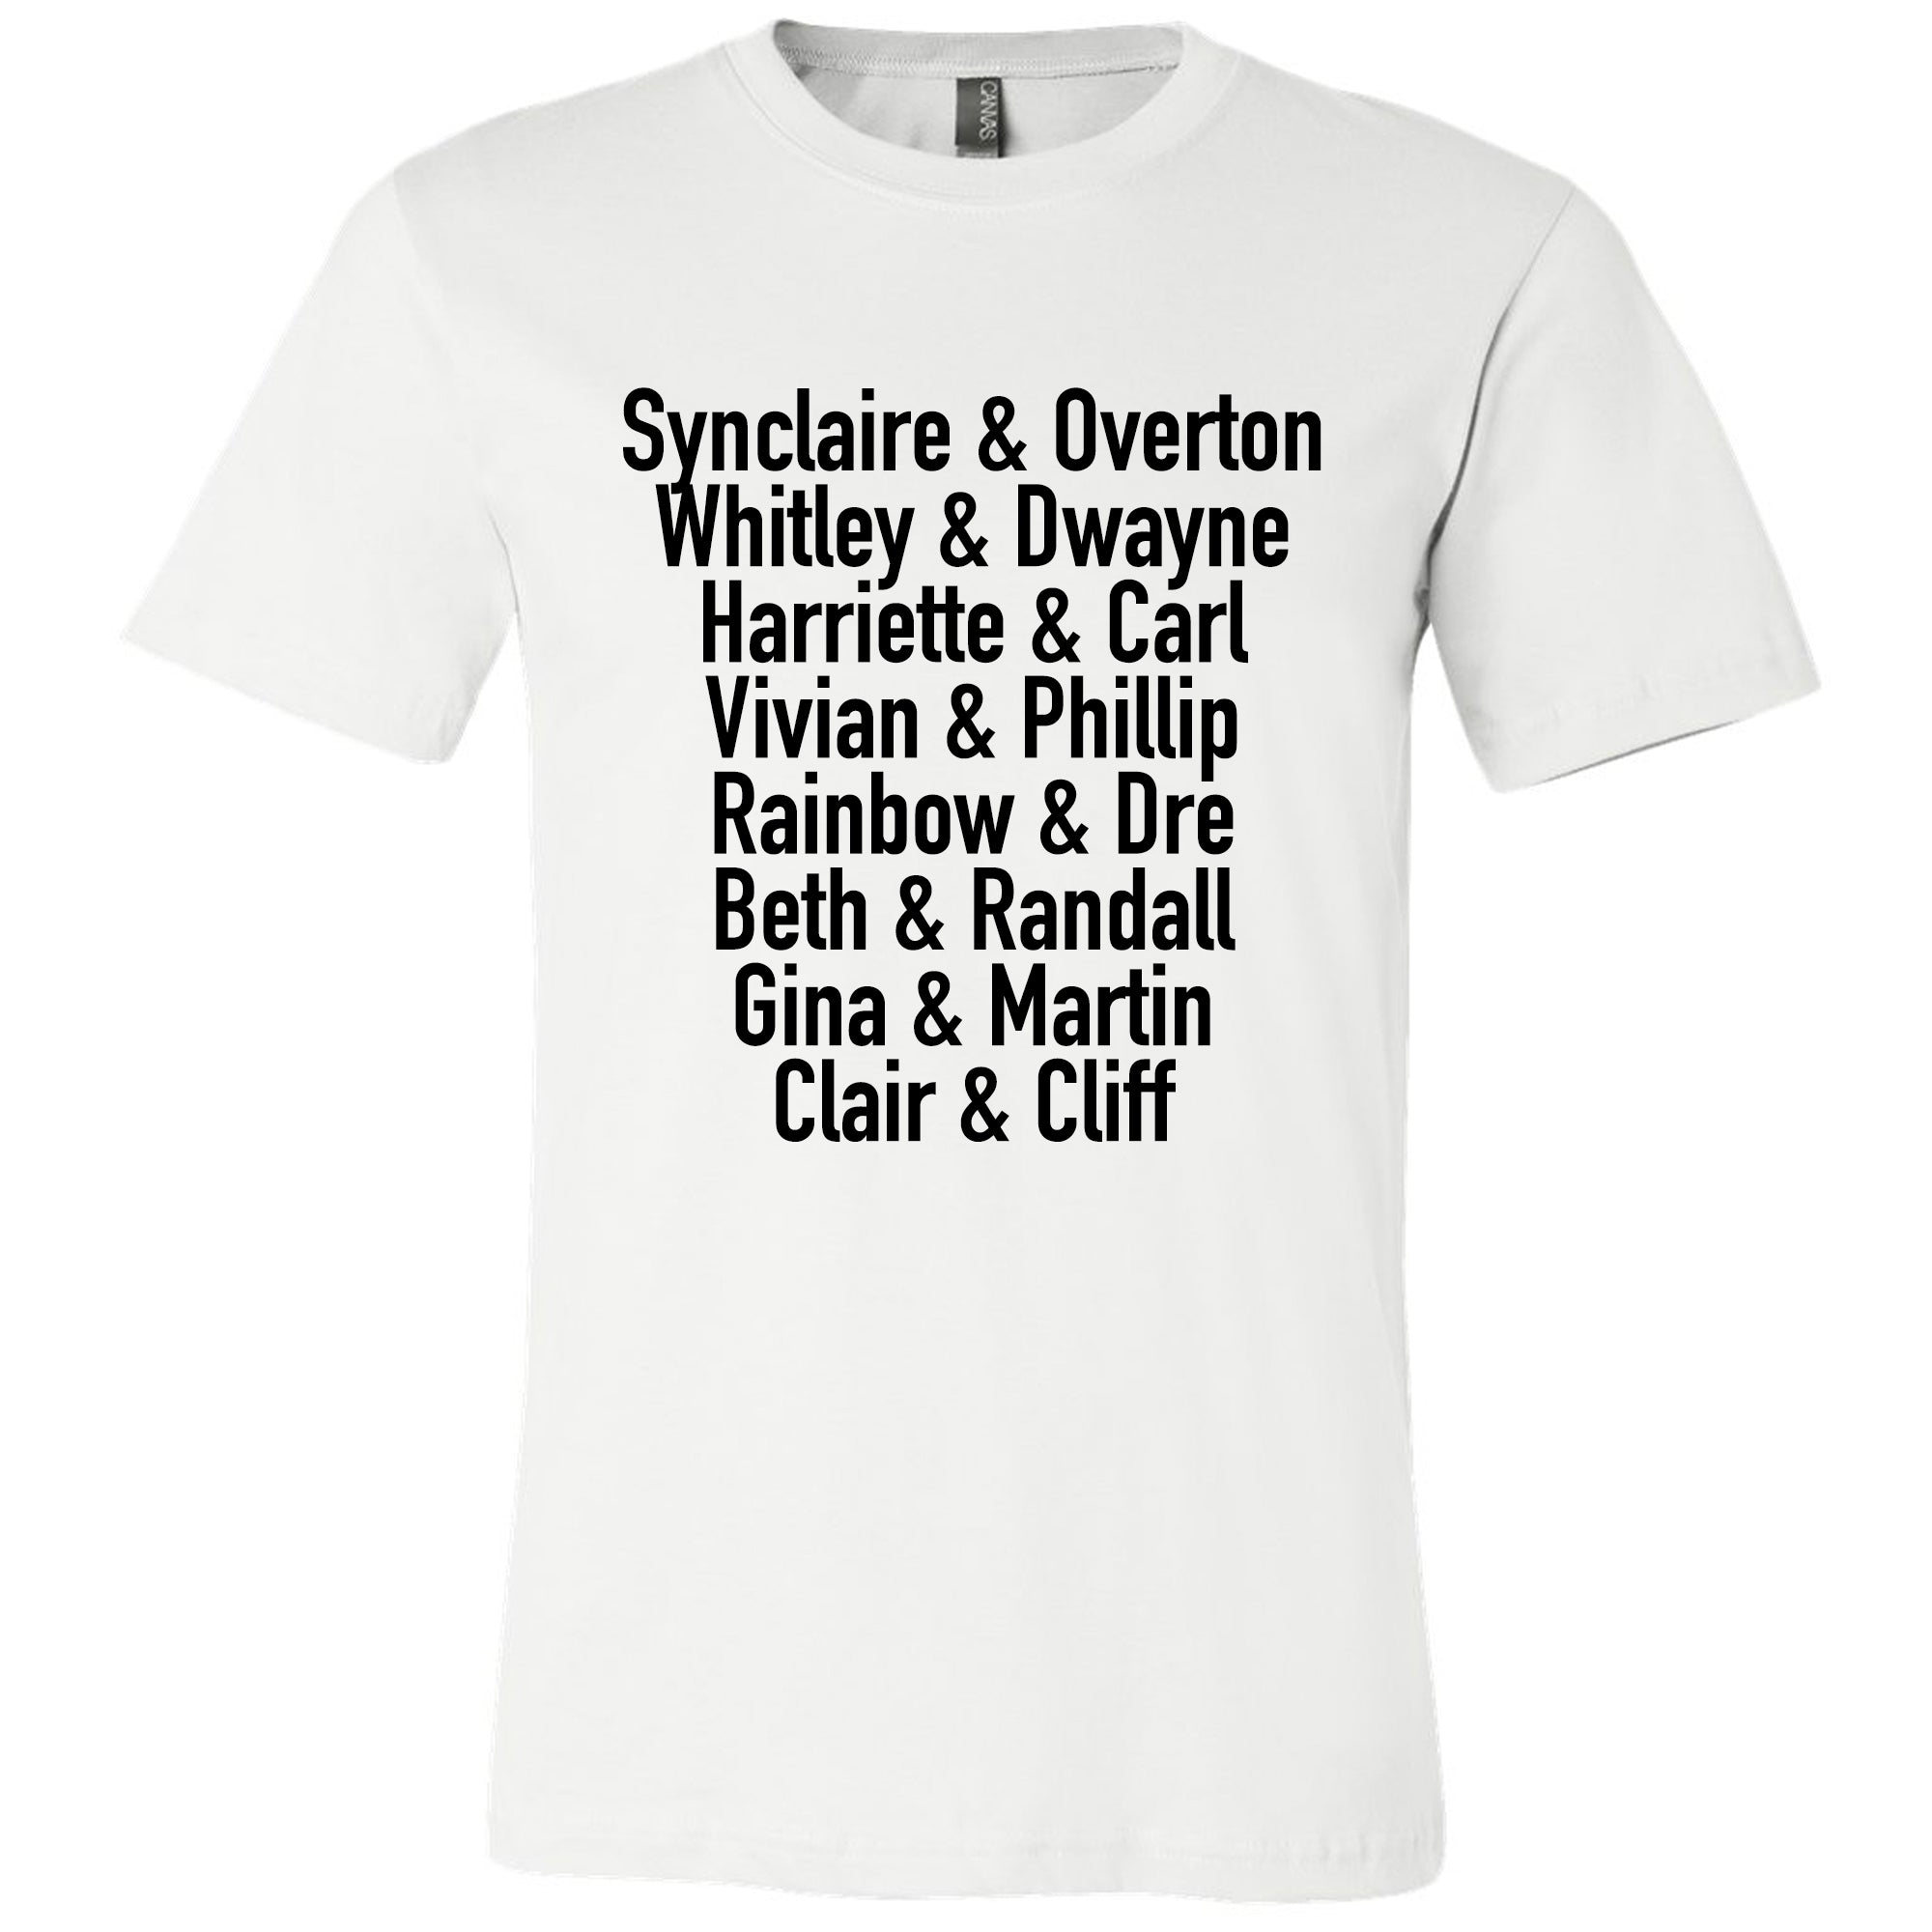 TV Couples Unisex T-shirt - The Carter Brand - Black By Popular Demand - Rooting For Everybody Black - Black Pride Apparel